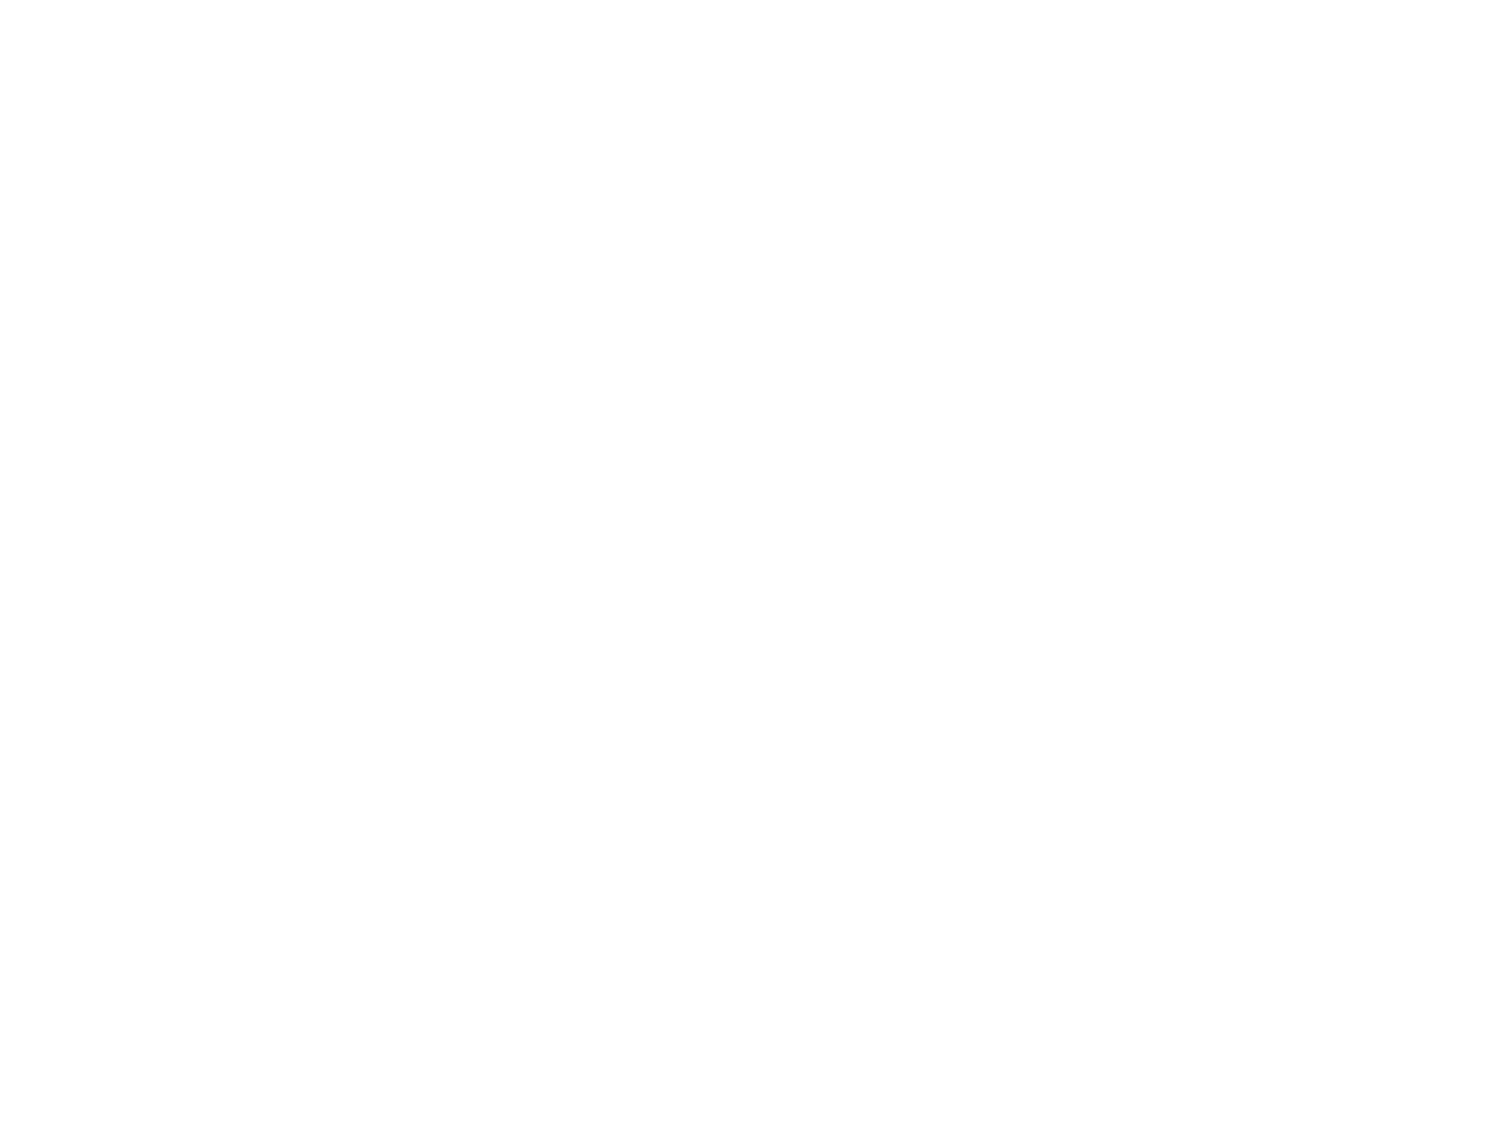 Partnered with the University of Salford